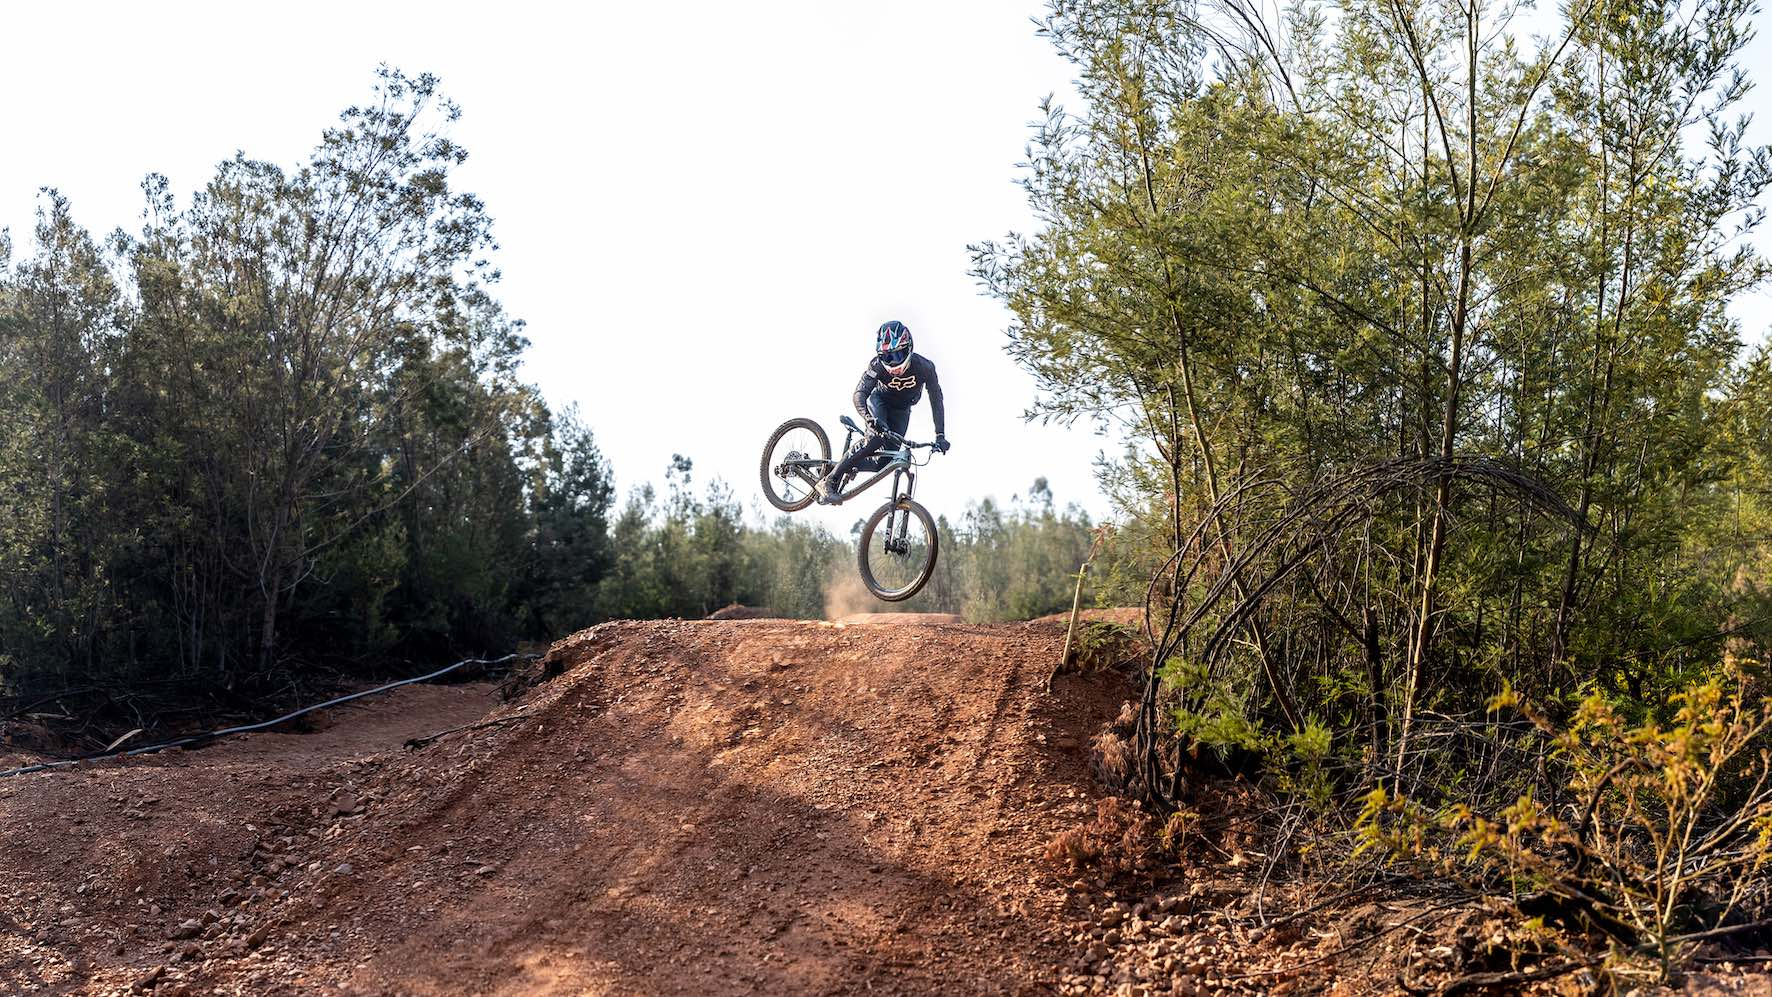 Downhill MTB action with Rory Kirk in Alternate Playgrounds